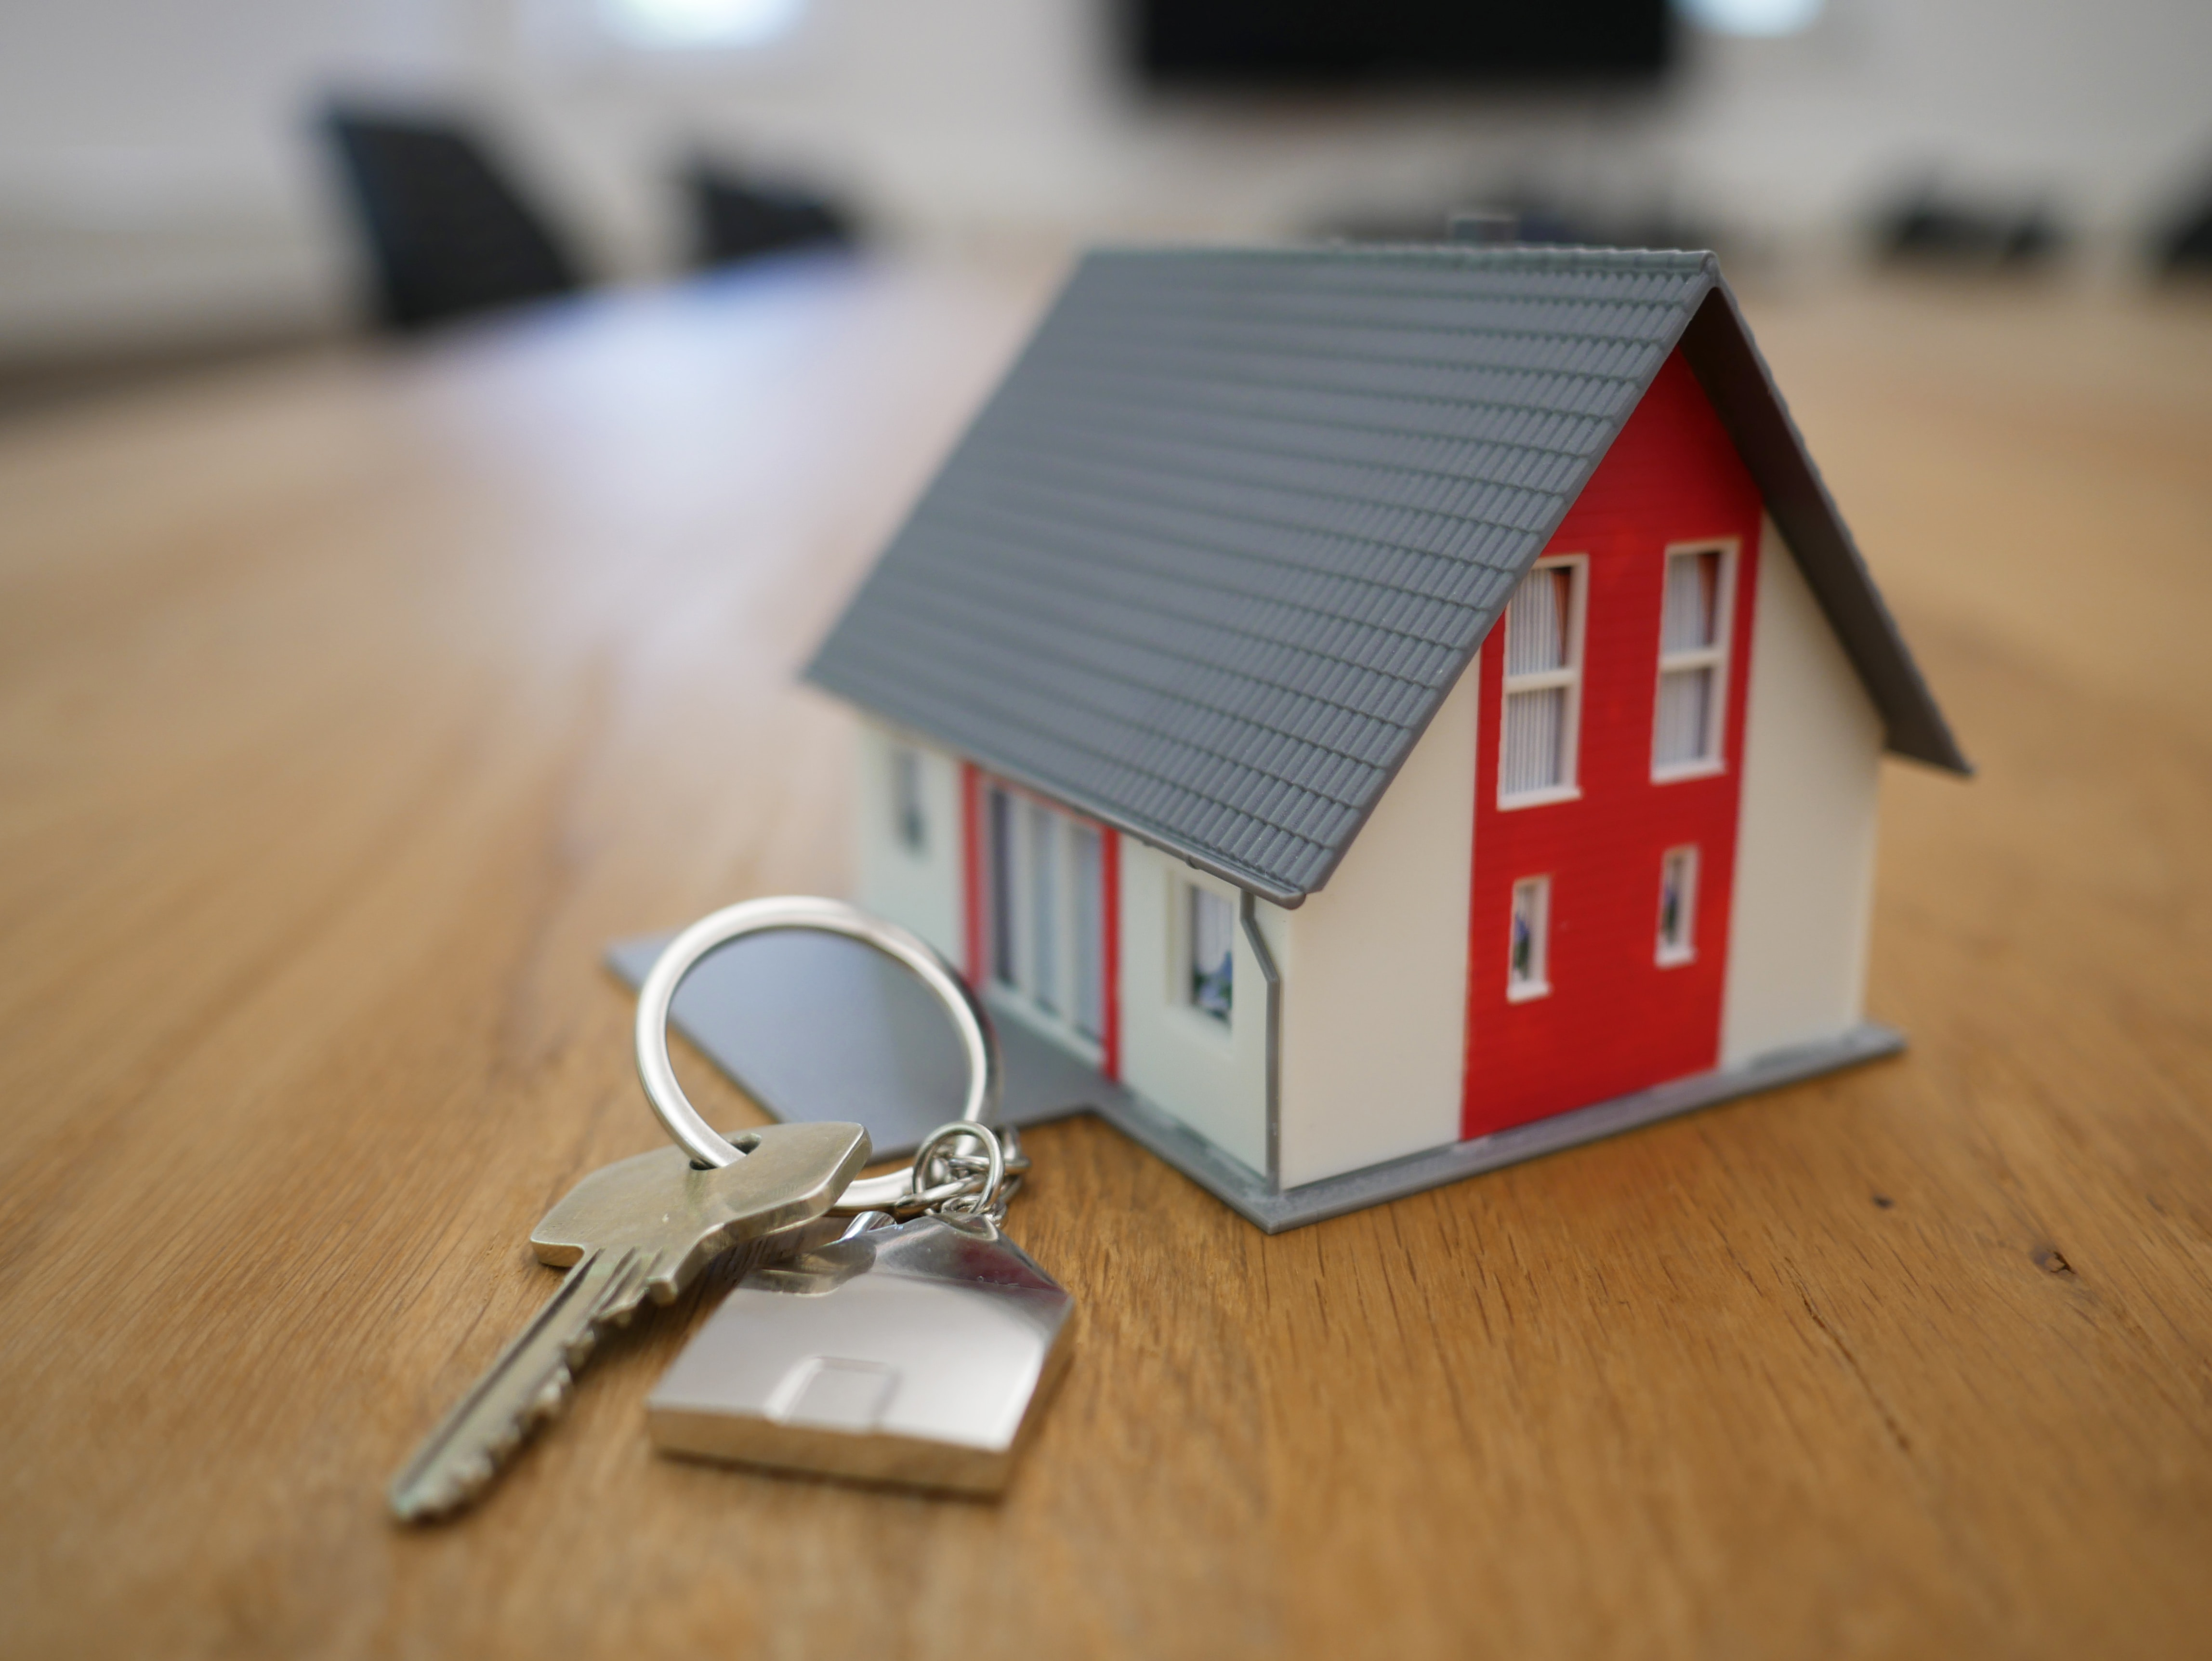 An image of a home with keys.